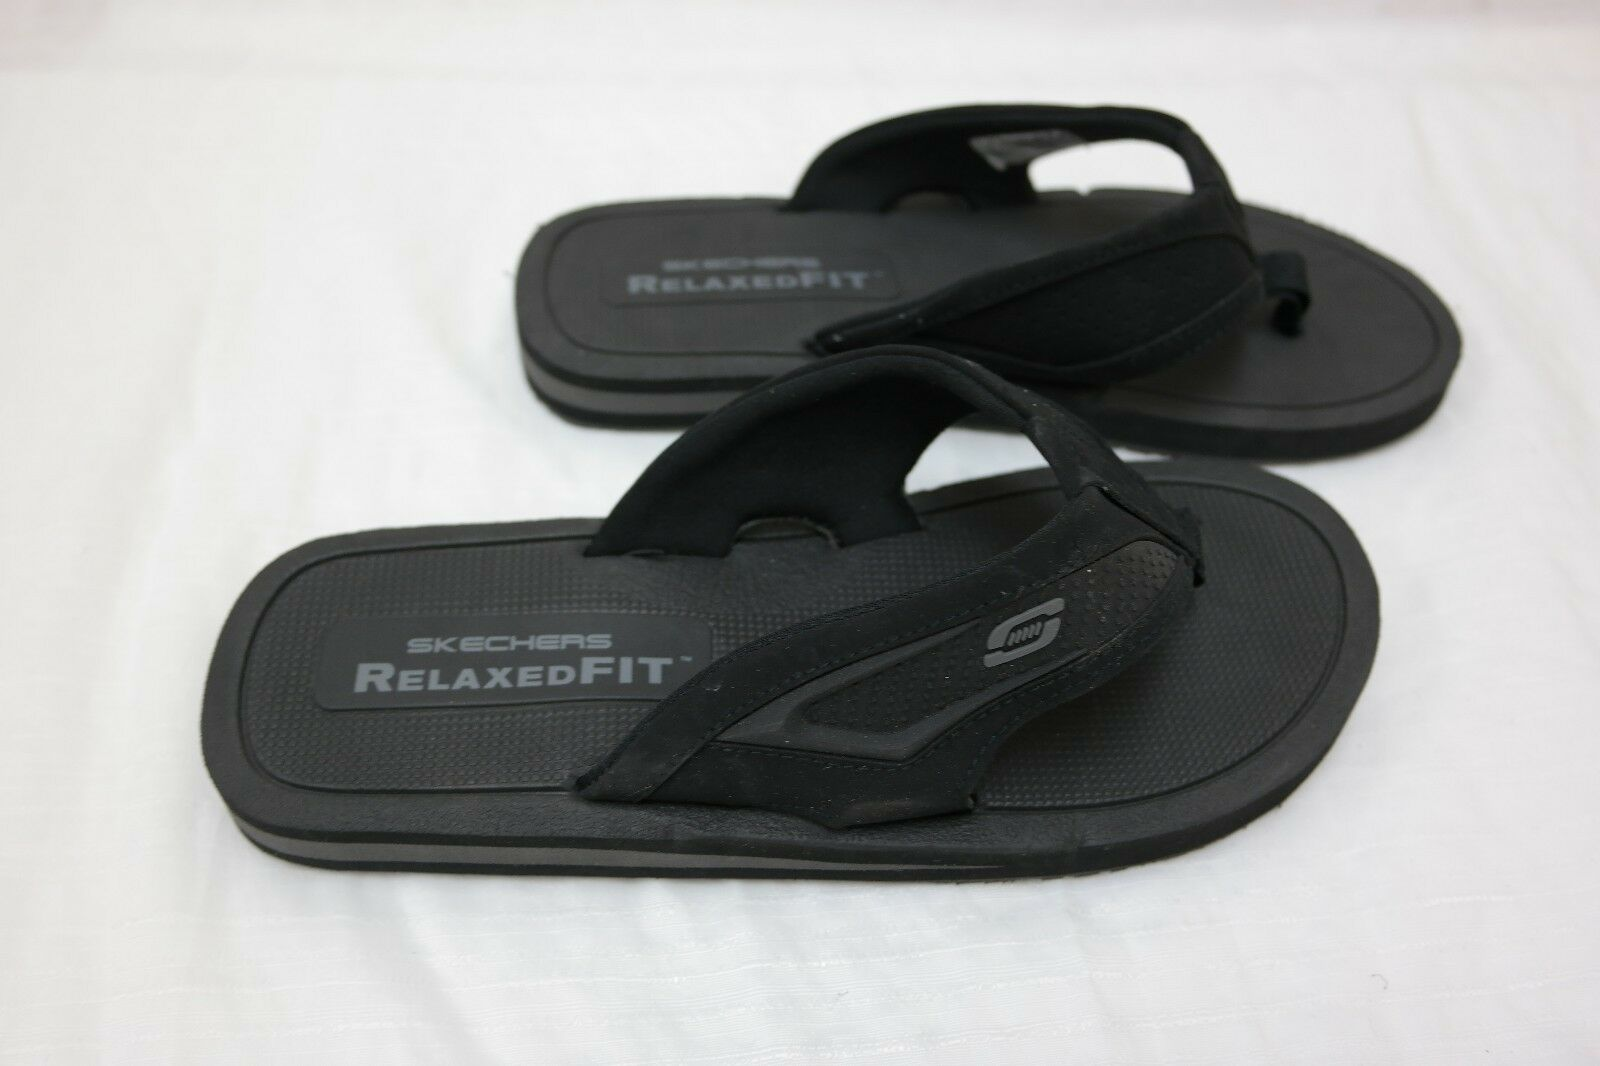 New! Men's Skechers Relaxed Fit Clidro Flip Flop Sandal Black  I2 Comfortable and good-looking